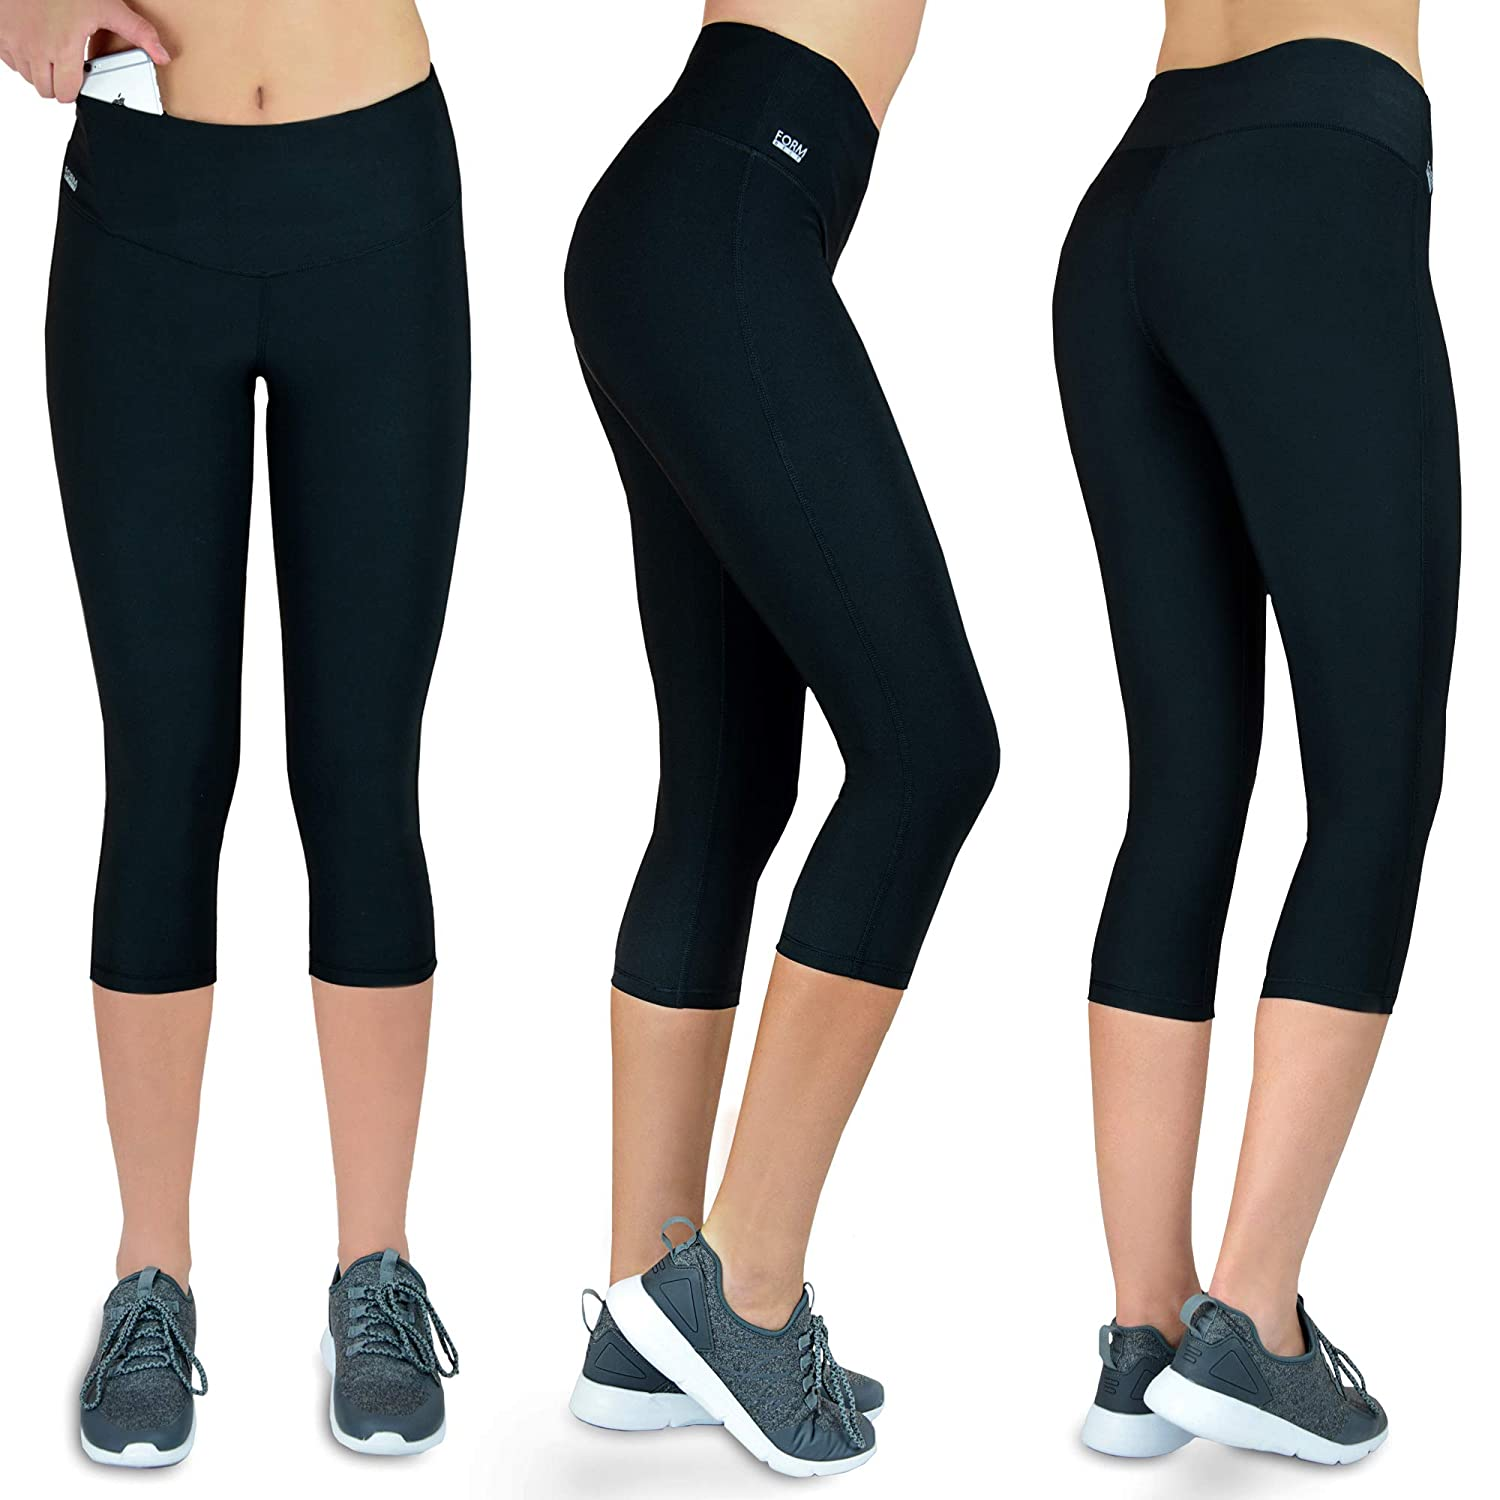 601f4a9dd02ab Formbelt Women Running Capri 3/4 Tights with Waist-Pocket for Smartphone  Iphone Mobile Key Credit Cards/Sports Leggings Integrated Belt – Fitness,  ...